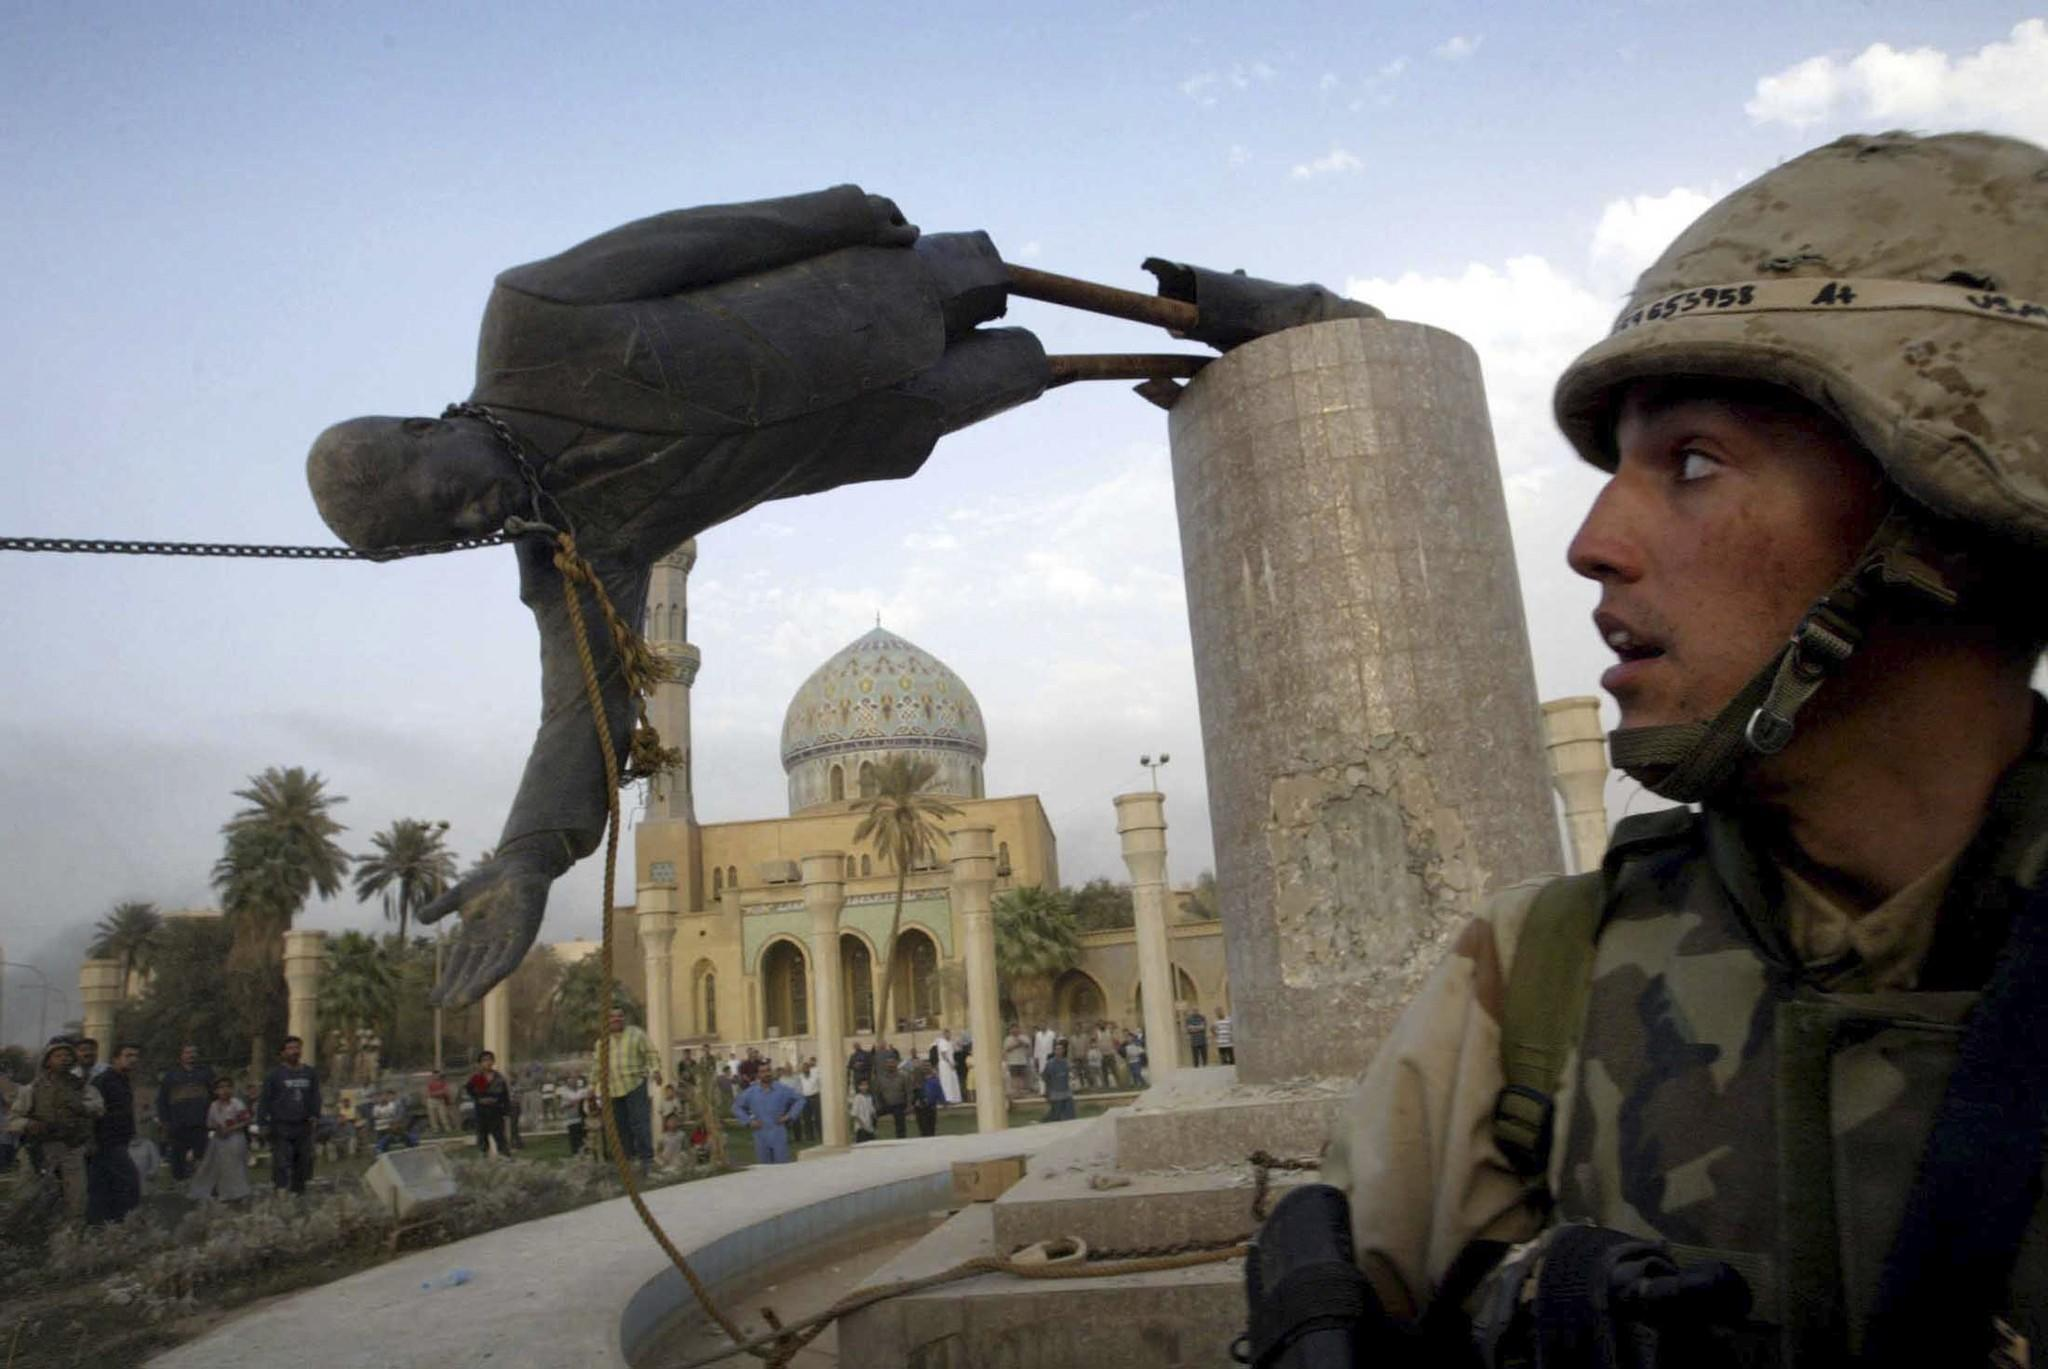 U.S. Marine Corp Assaultman Kirk Dalrymple watches as a statue of Iraq's President Saddam Hussein falls in central Baghdad's Firdaus Square in this April 9, 2003 file photo.